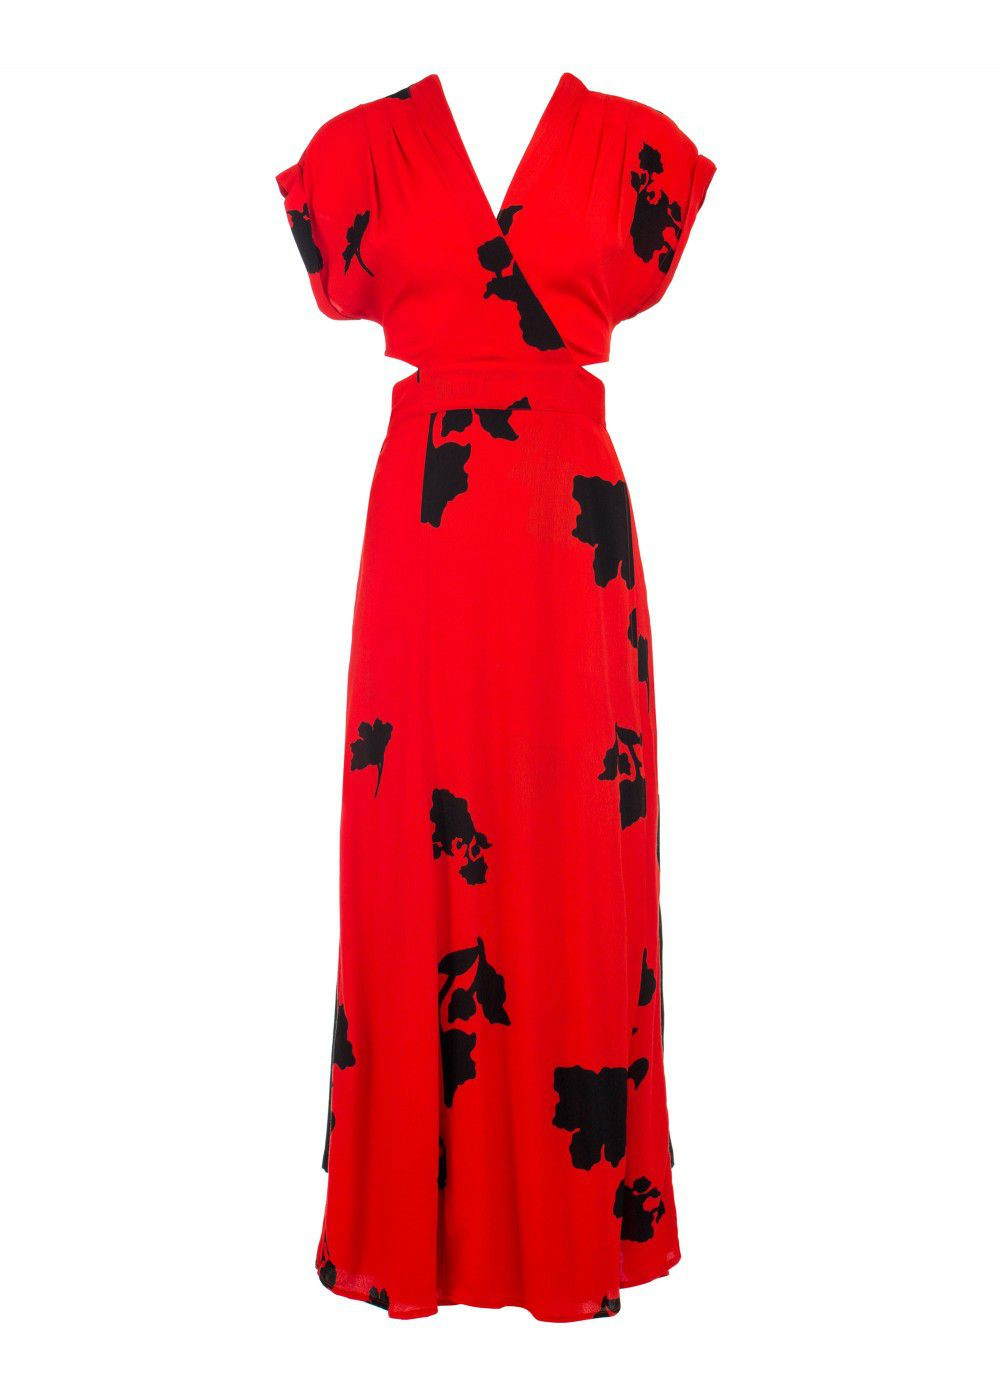 Echo 77 Bali Batik Print Red Dress